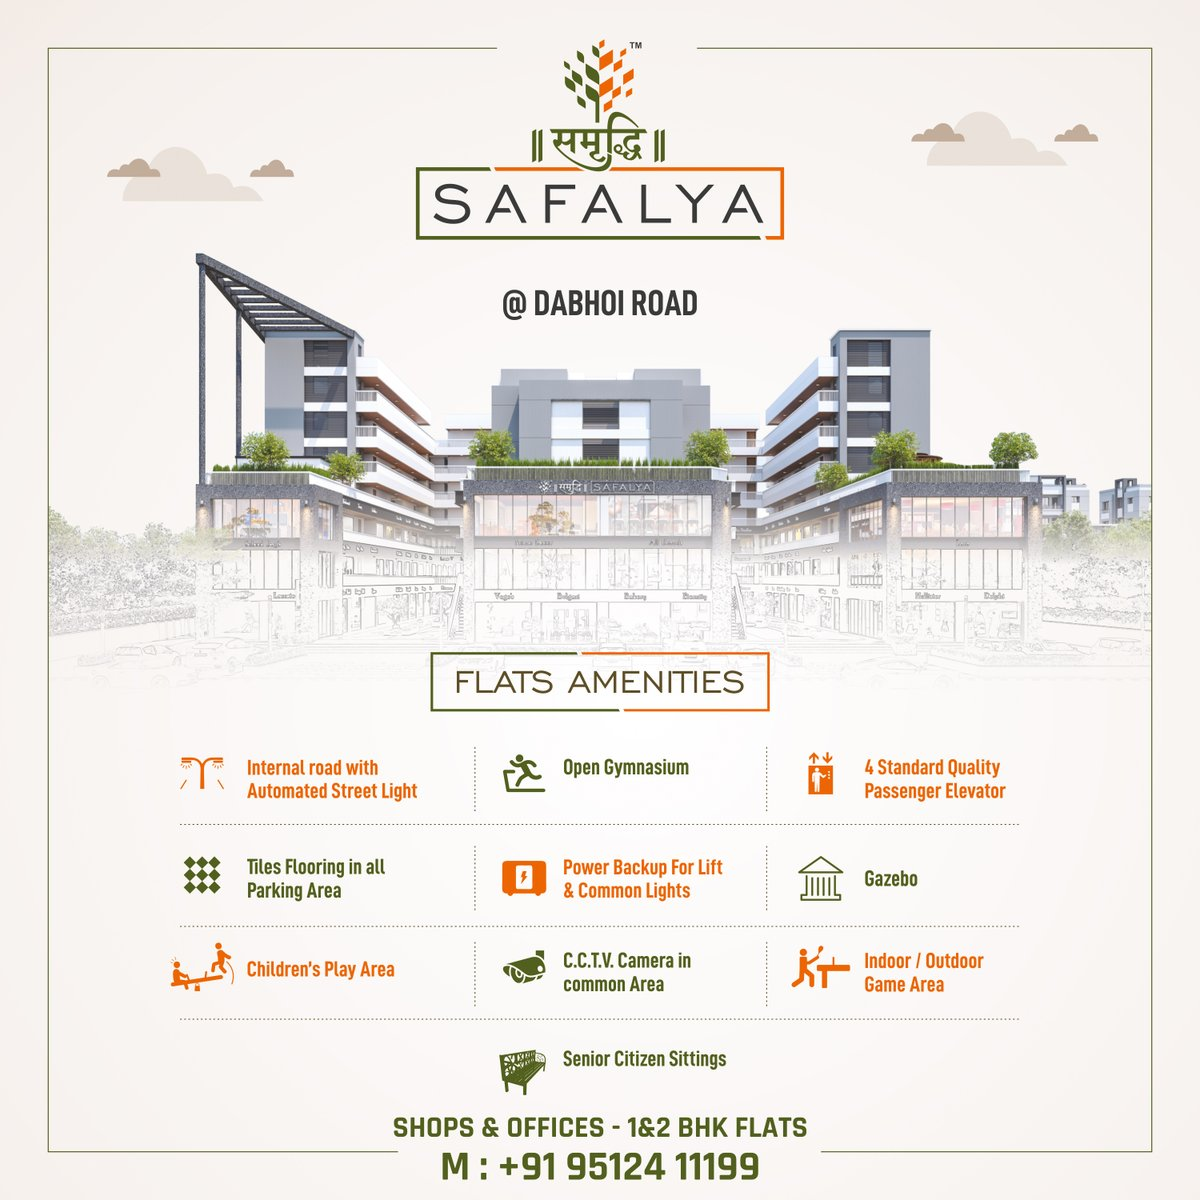 A dream home that you are looking for now has a name and address! Samruddhi Safalya.  Rera No. PR/GJ/VADODARA/VADODARA/Other/MAA07723/021220 Rera Website -   #samruddhibuilders #samruddhisafalya #Vadodara #flats #realestate #home #house #newhome